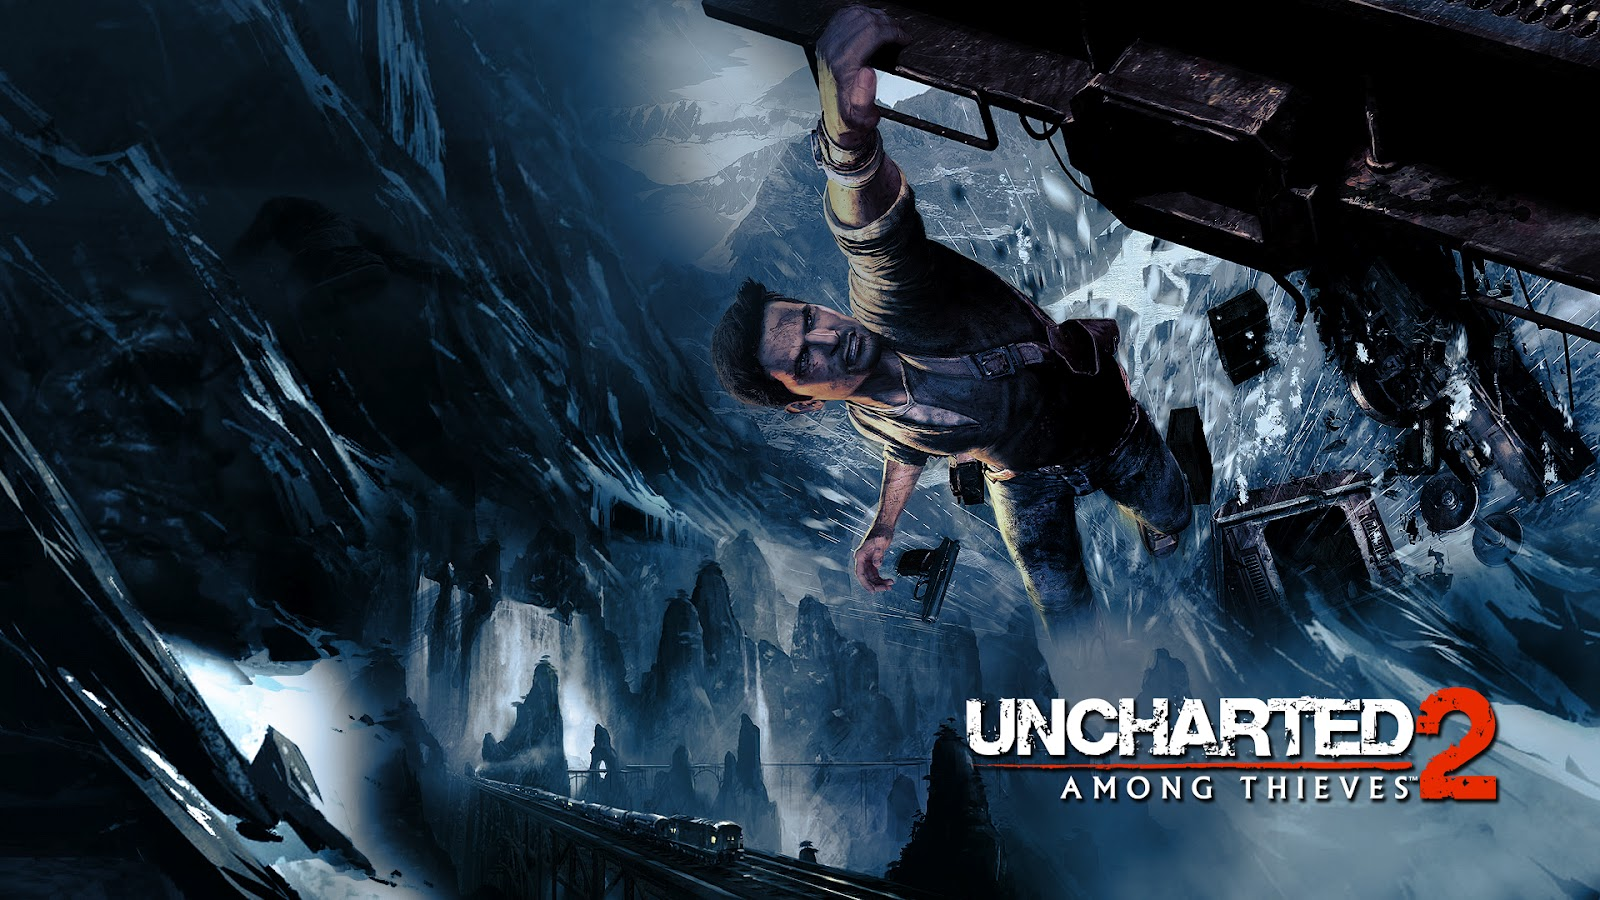 Uncharted 2 HD Wallpapers Uncharted 2 Among Thieves Wallpapers in HD 1600x900